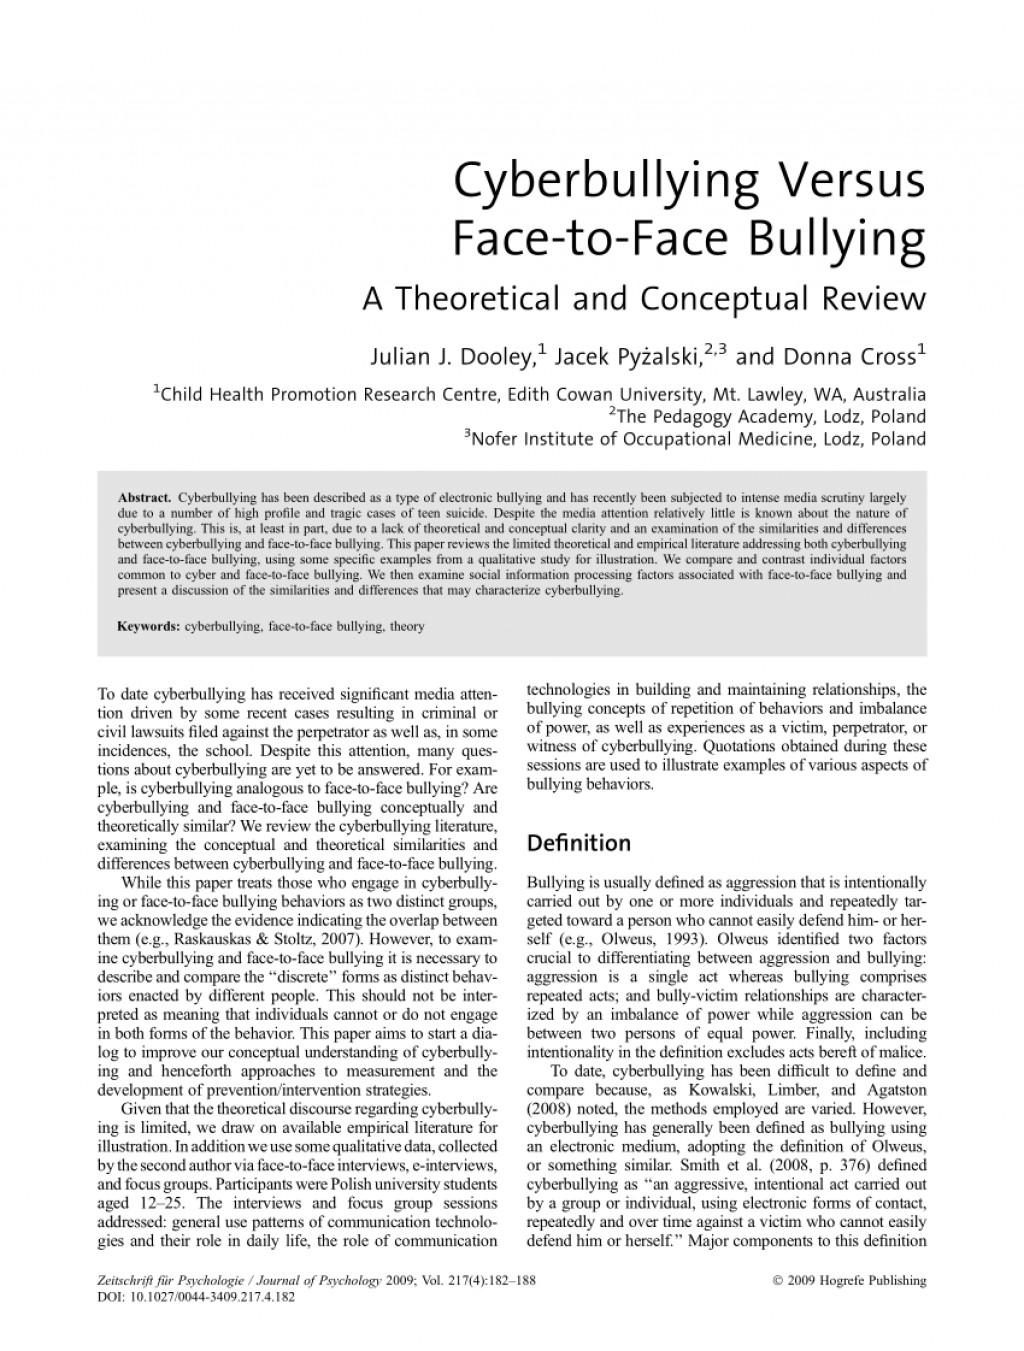 003 Bullying Research Paper Review Of Related Literature Striking Large